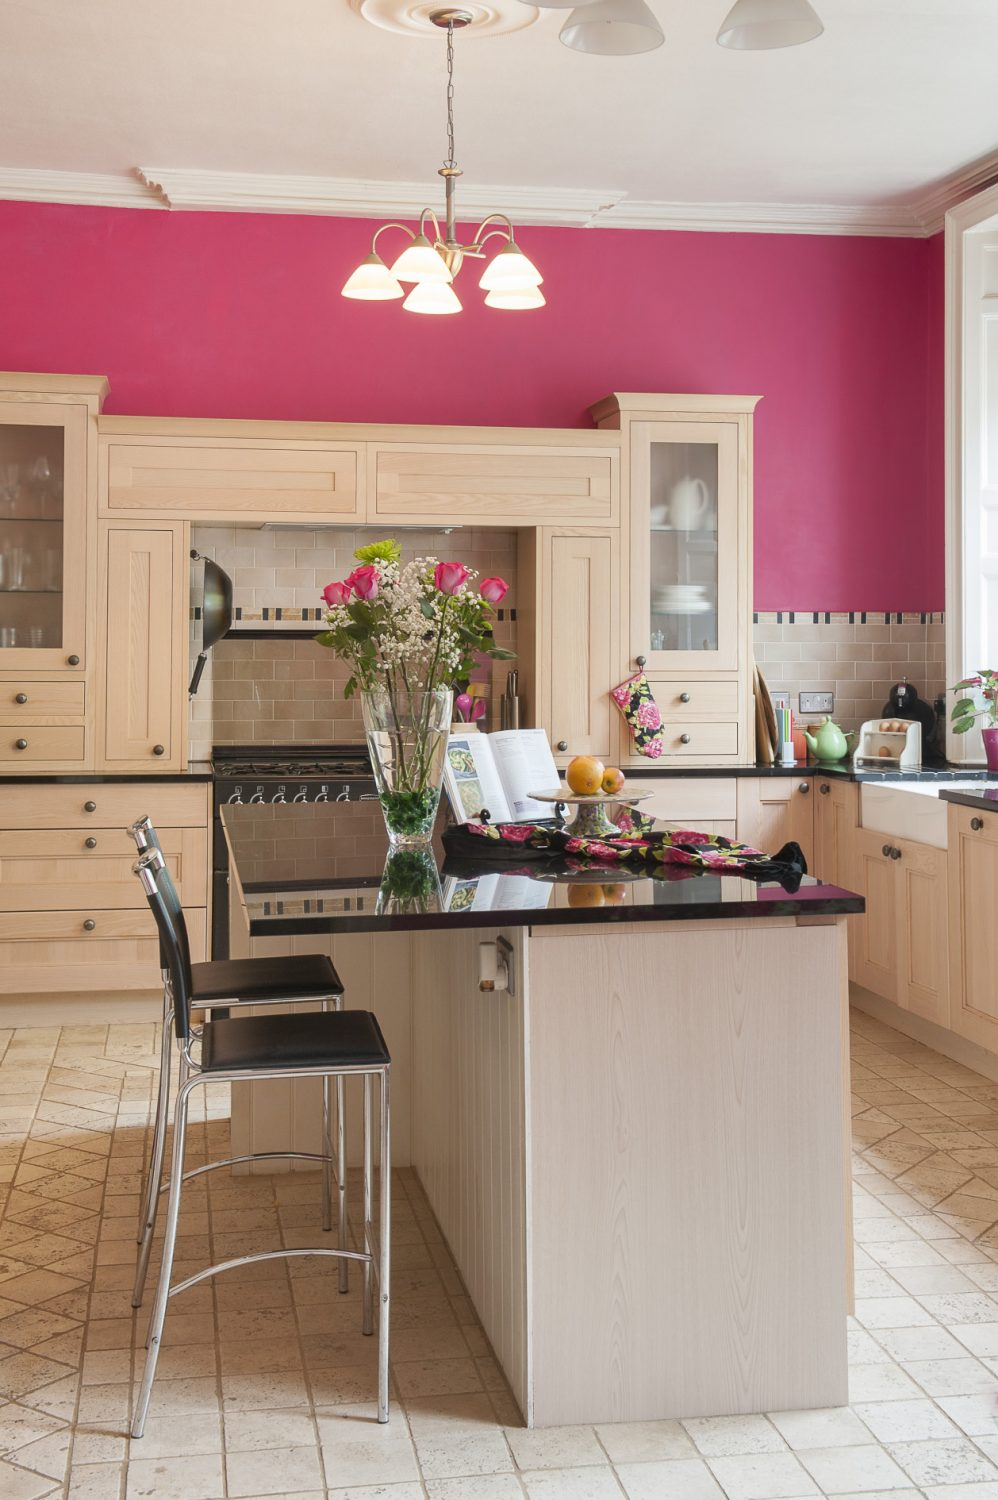 Dawn has lavished vibrant pink paint on the walls of her kitchen and kept the costs down by choosing units from B&Q. The polished black marble work surfaces add a luxurious finishing touch